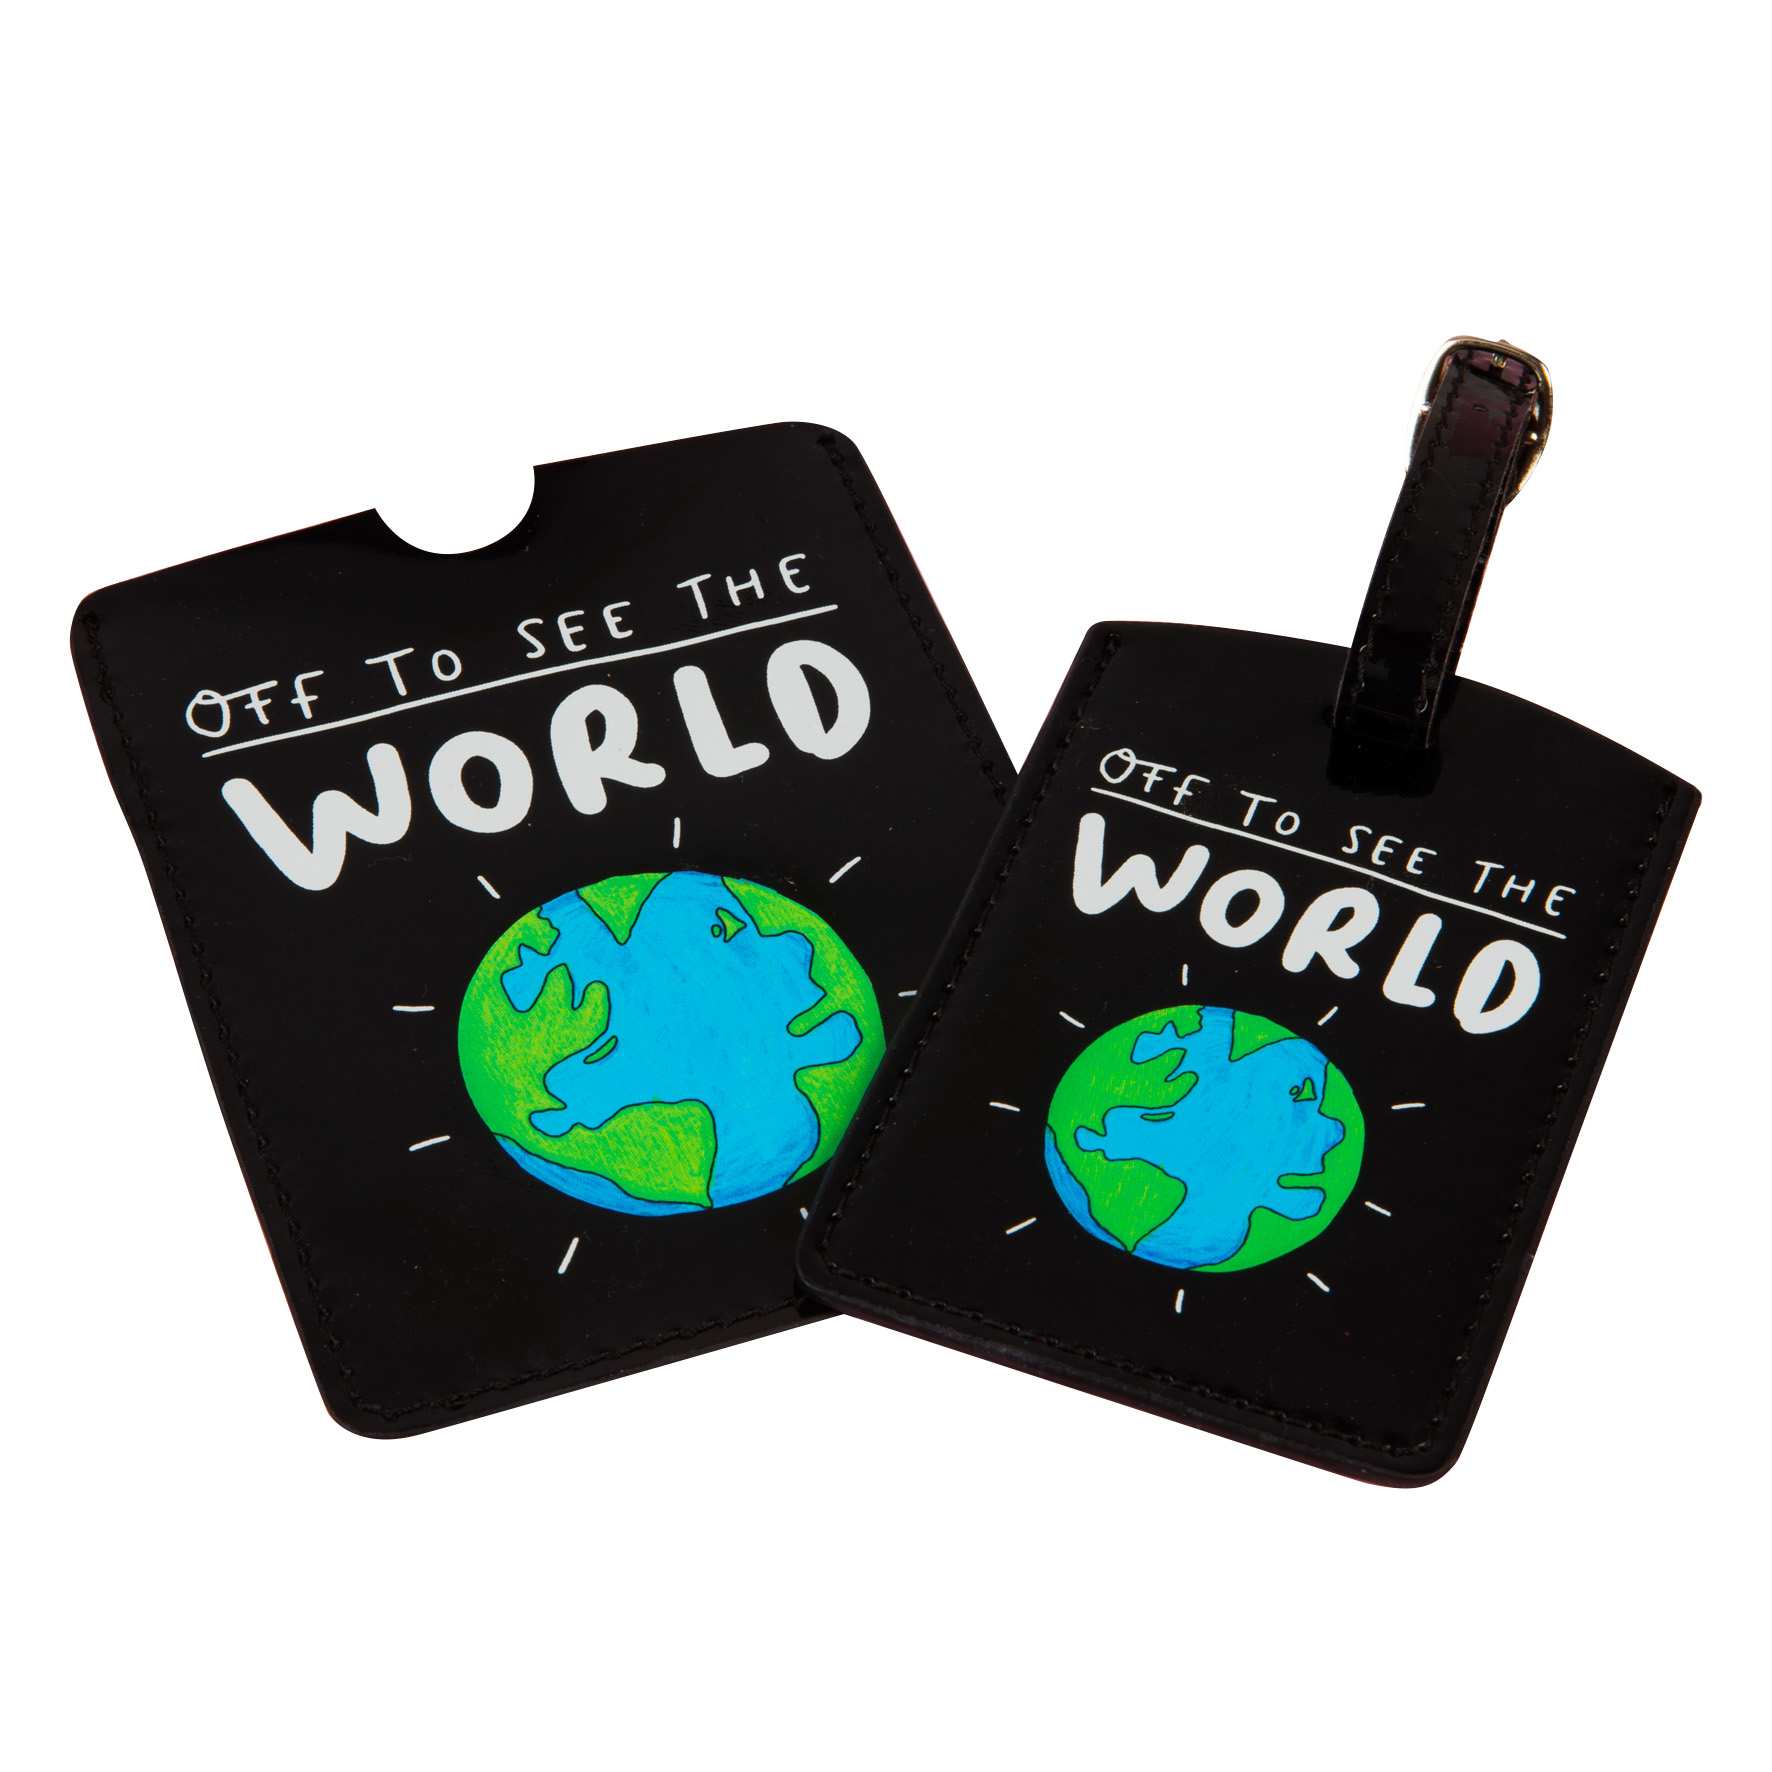 The Happy News World Luggage Tag by Emily Coxhead